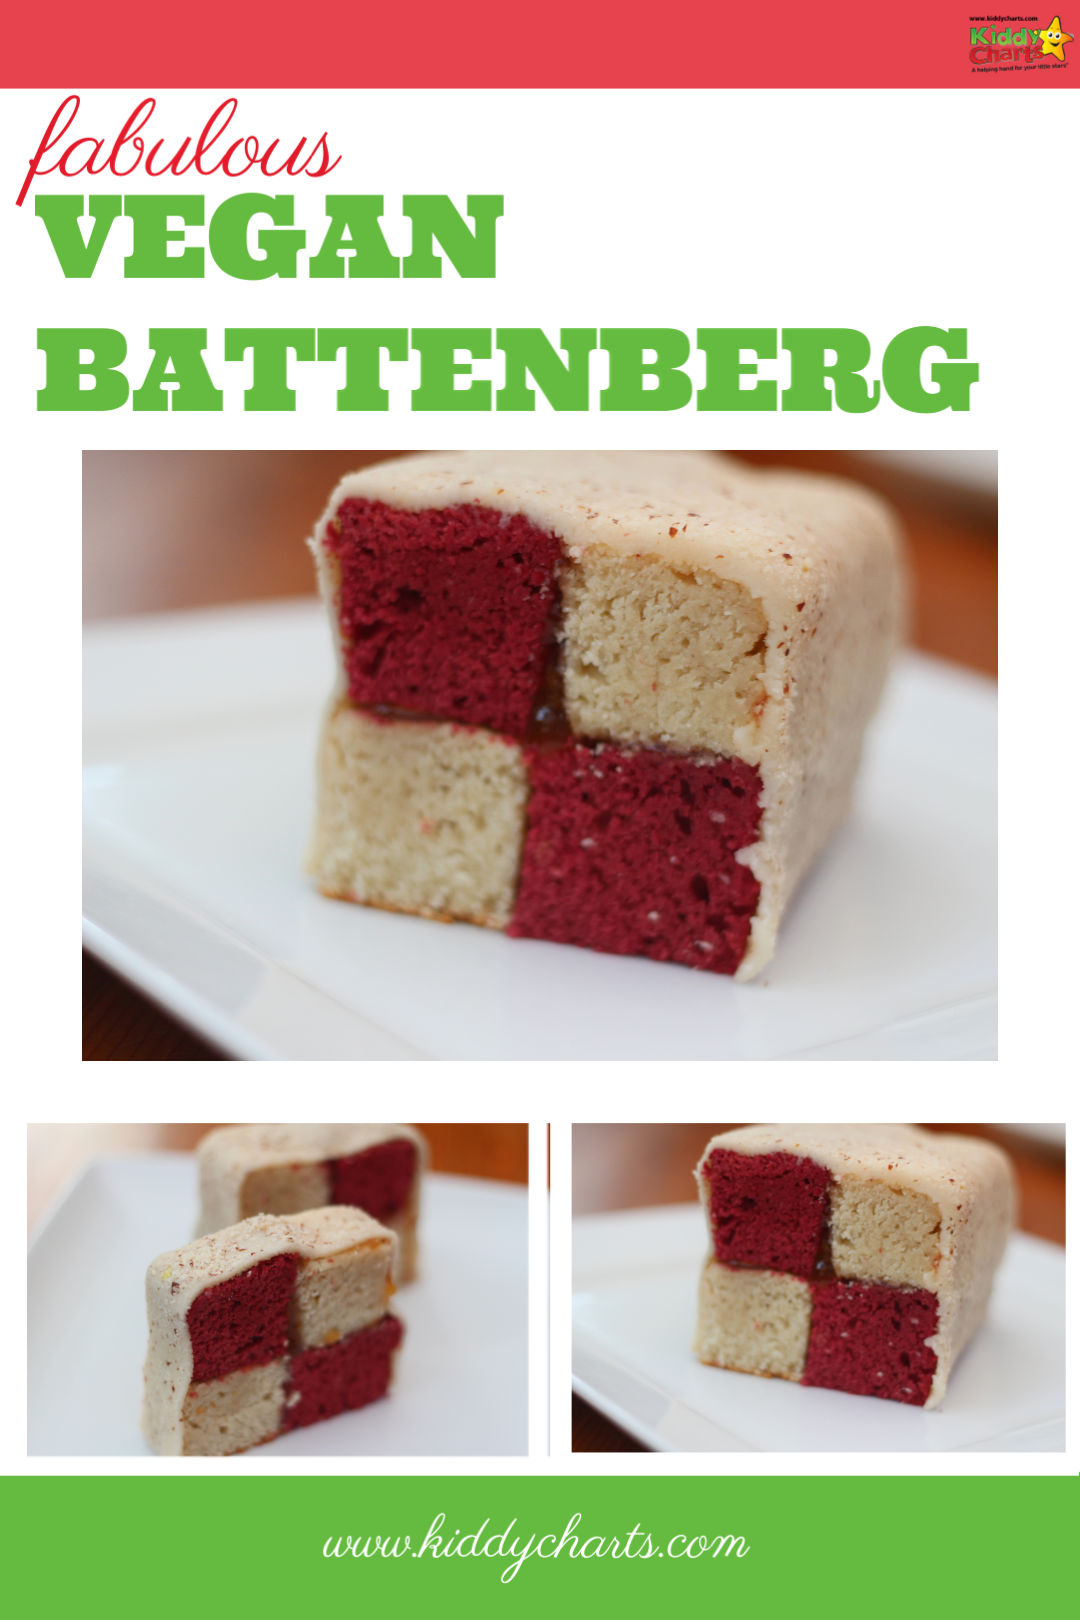 Are you after a vegan battenberg cake? Then this one with Beetroot and Coconut will be perfect for you. Go check it out! #vegan #veganrecipes #vegancakes #battenberg